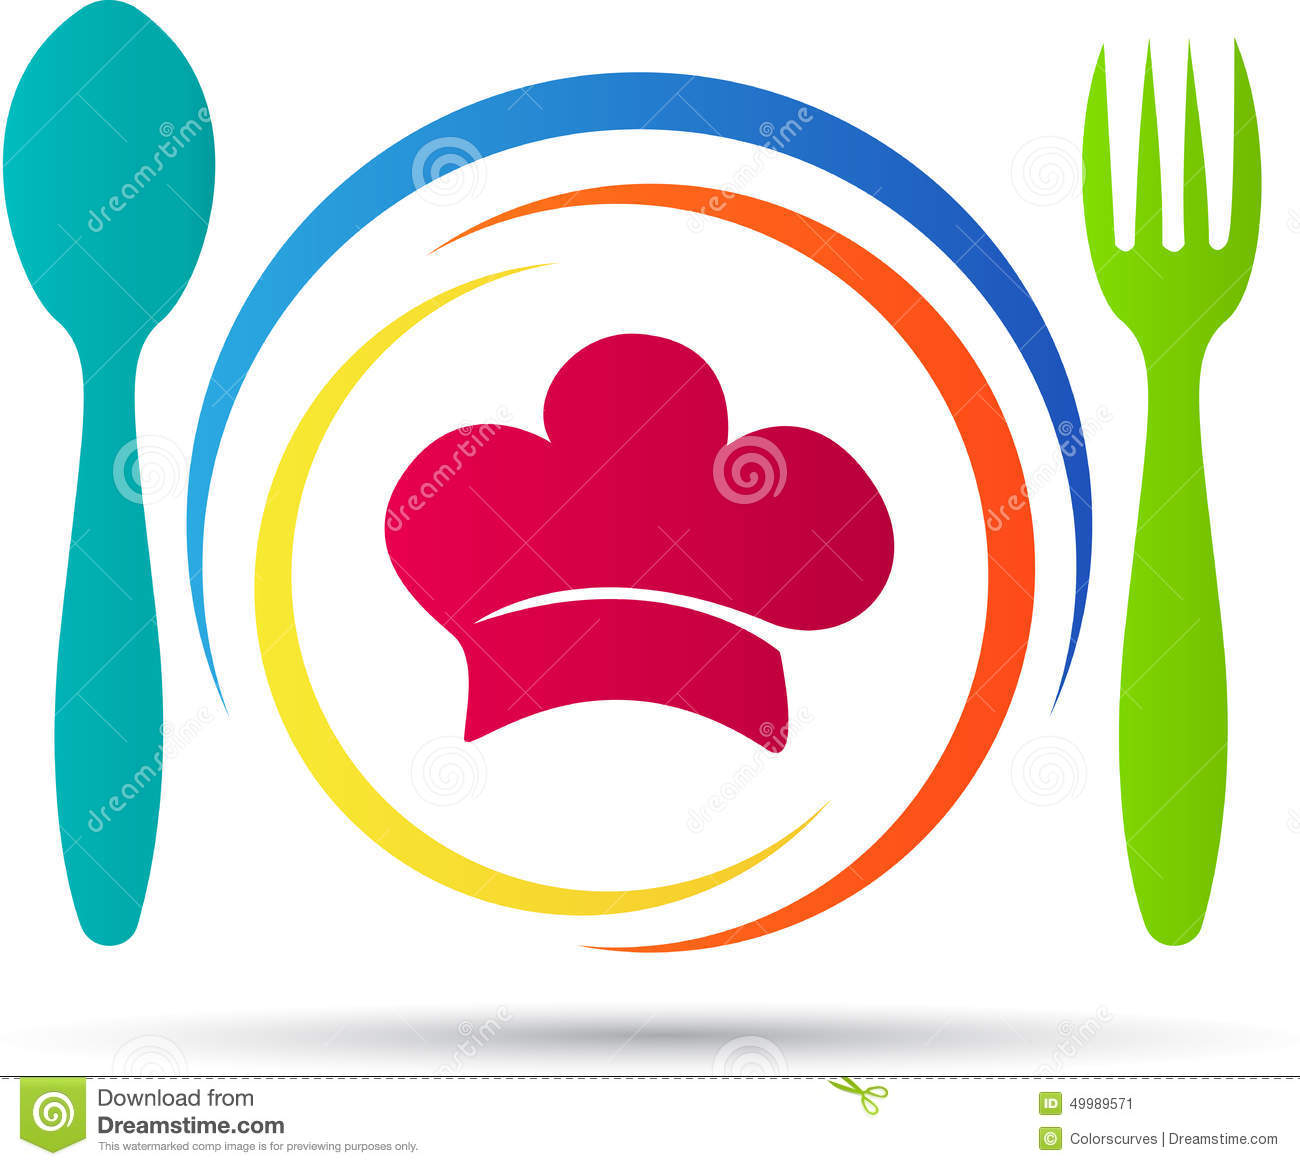 restaurant clipart download - photo #26